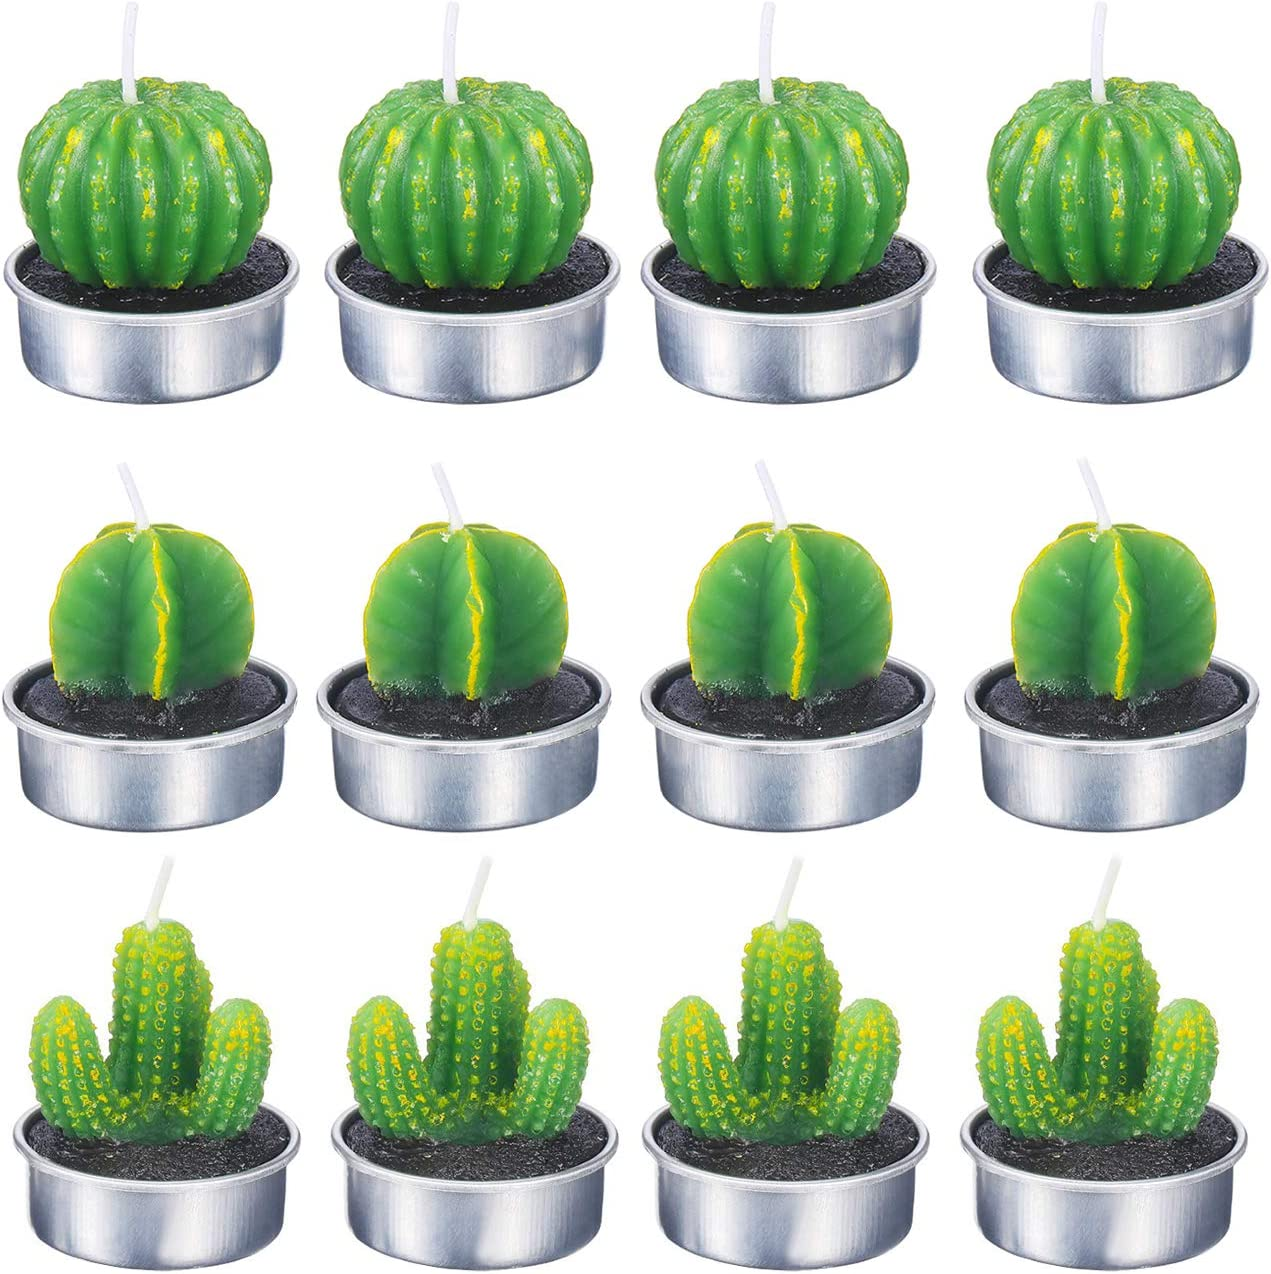 Sunnyglade 12PCS Cactus Tea Lights Candles Handmade Delicate Succulent for Home,Party, Festival,Birthday,Wedding Decor